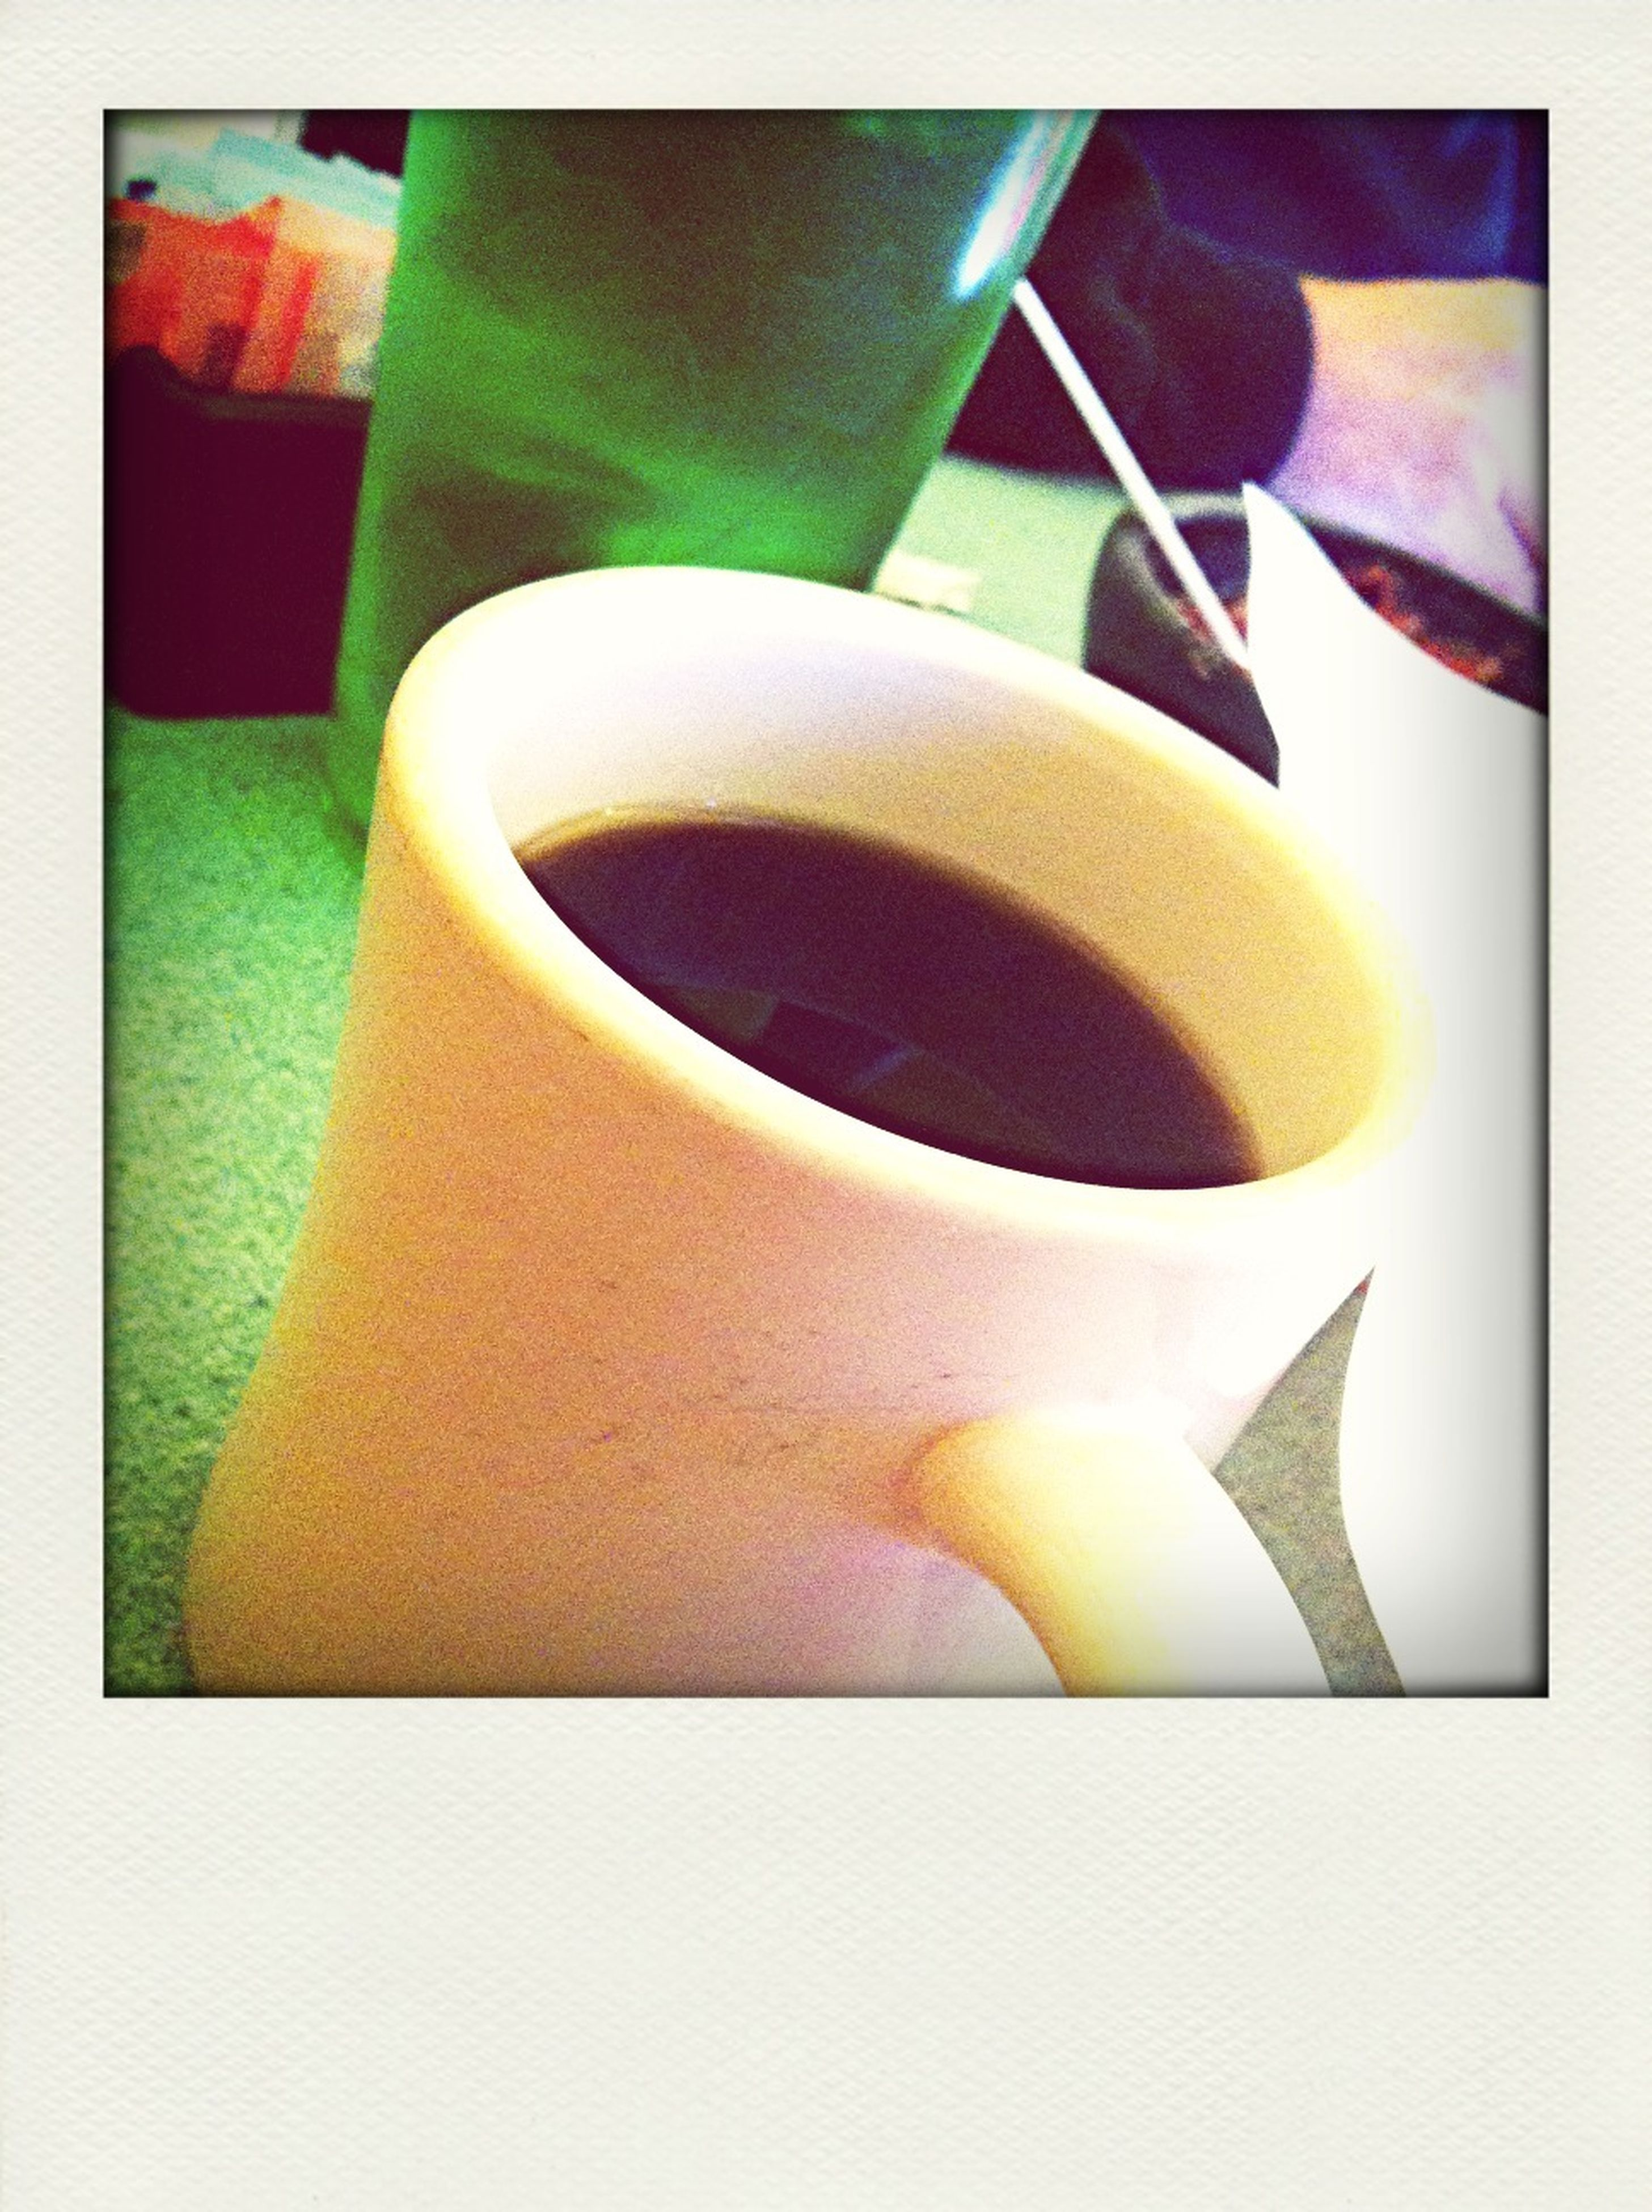 transfer print, auto post production filter, indoors, still life, close-up, table, high angle view, no people, frame, freshness, drink, food and drink, coffee cup, yellow, refreshment, day, single object, multi colored, book, paper